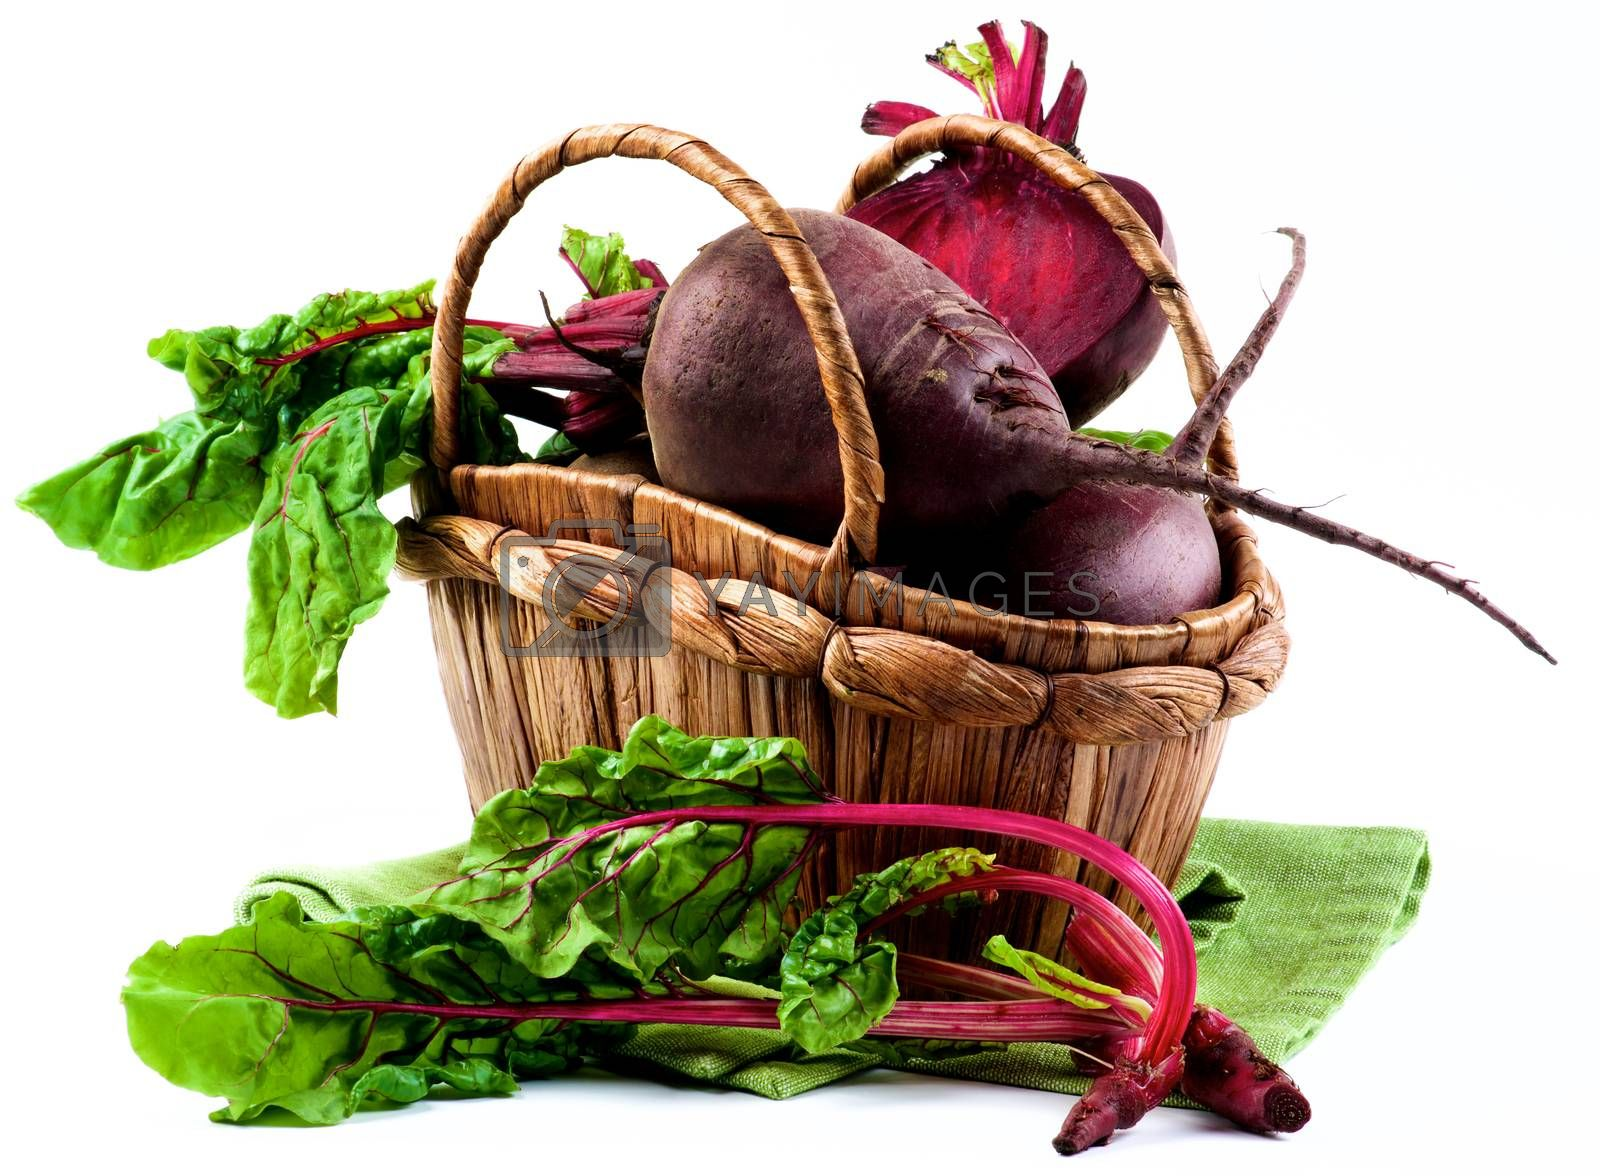 Arrangement of Full Body, Half and Young Sprouts with Green Beet Tops in Wicker Basket on Napkin isolated on White background